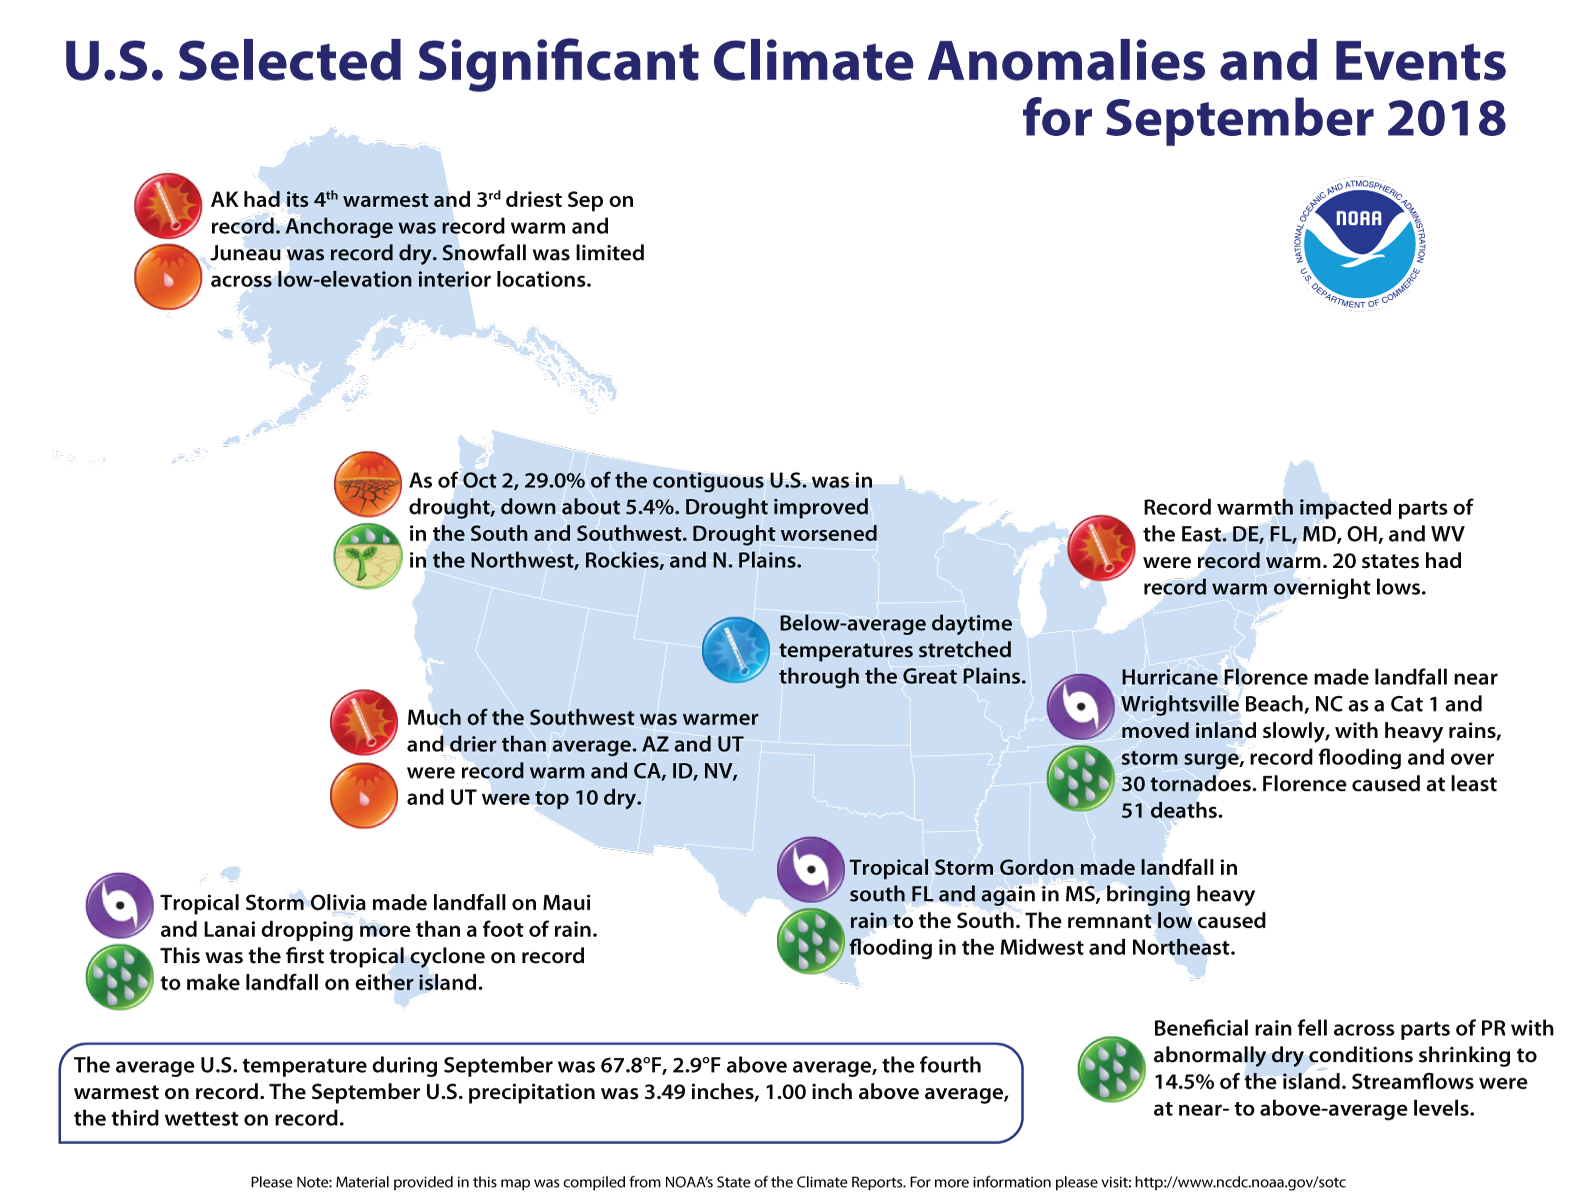 September Extreme Weather/Climate Events